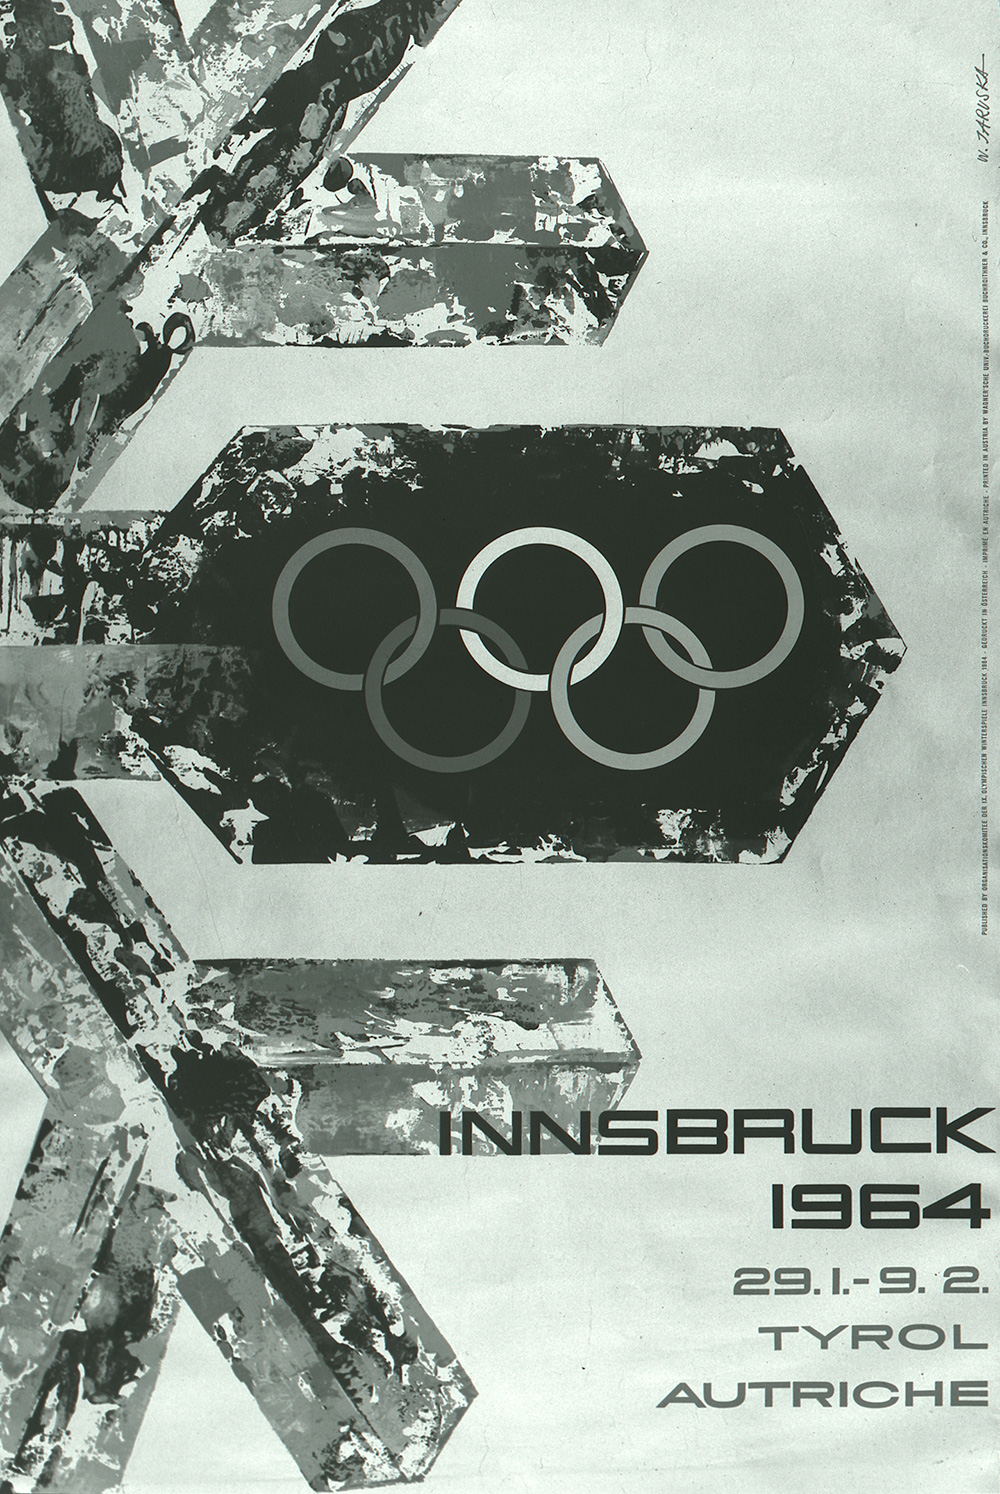 Winter Olympics: Innsbruck. 1964.